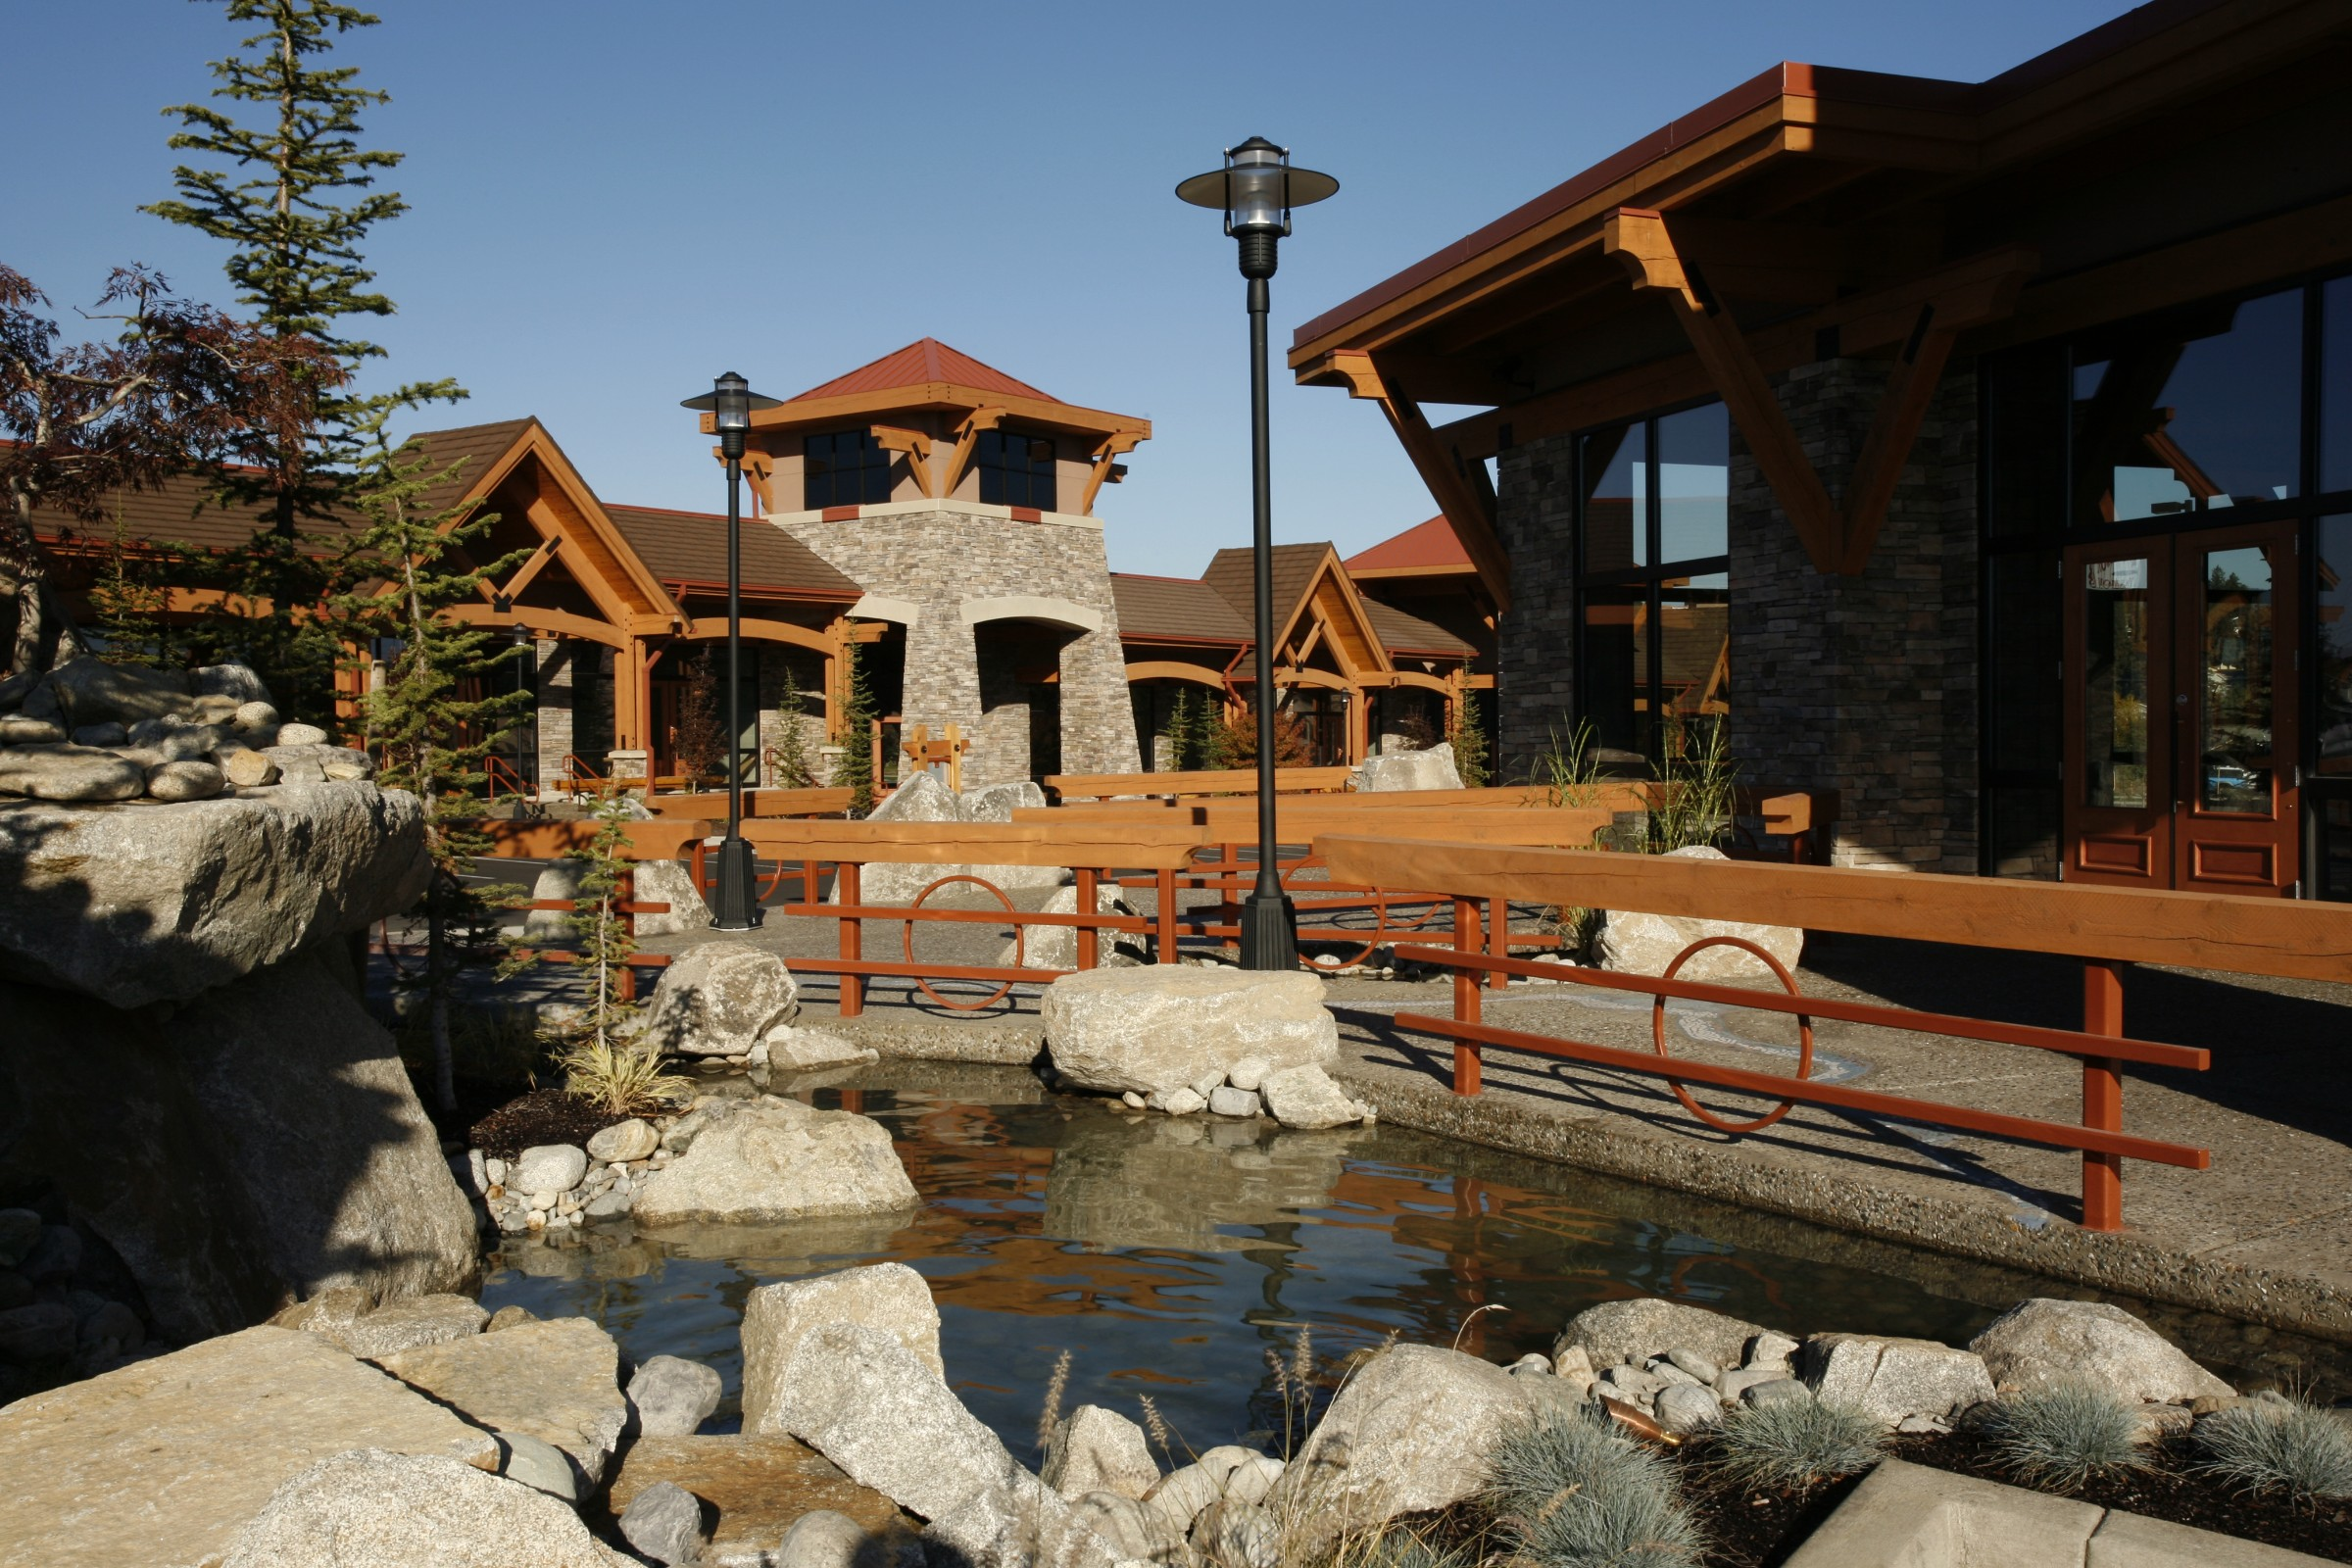 Hayden Creek Plaza is a multi-building retail shopping complex located in Hayden, Idaho that features the use of stone and wood timbers that compliment the regional vernacular.